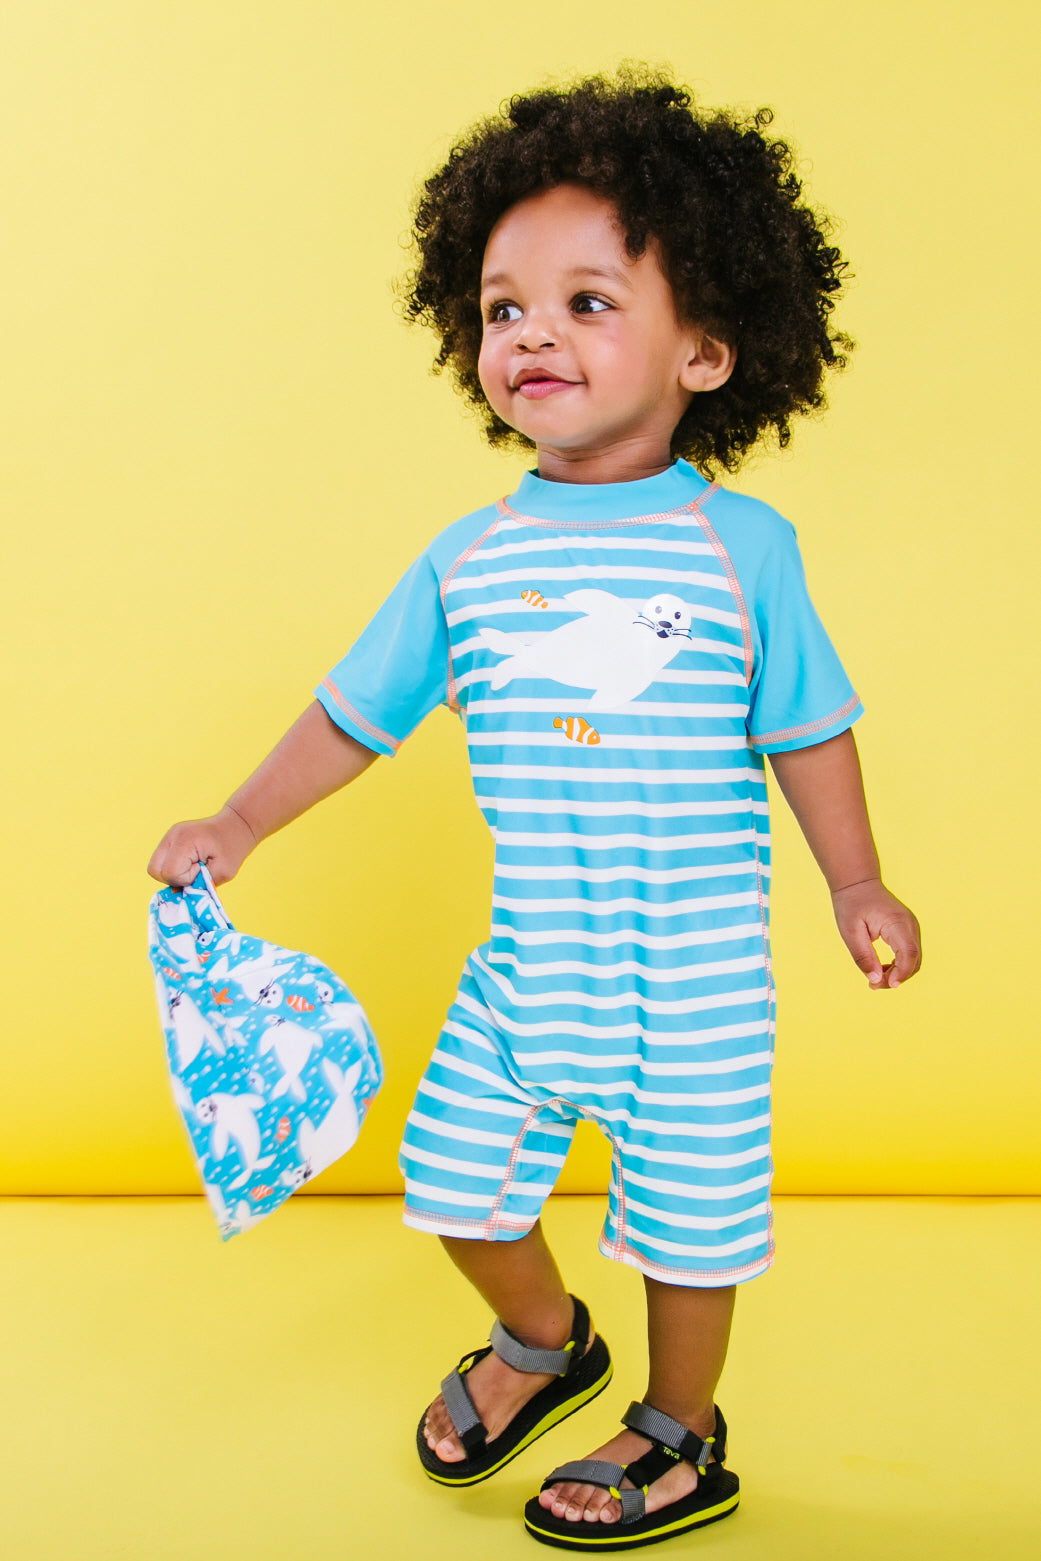 Boys Seal Stripe Short Sleeve Half Zip One Piece Swim Sunsuit, light blue